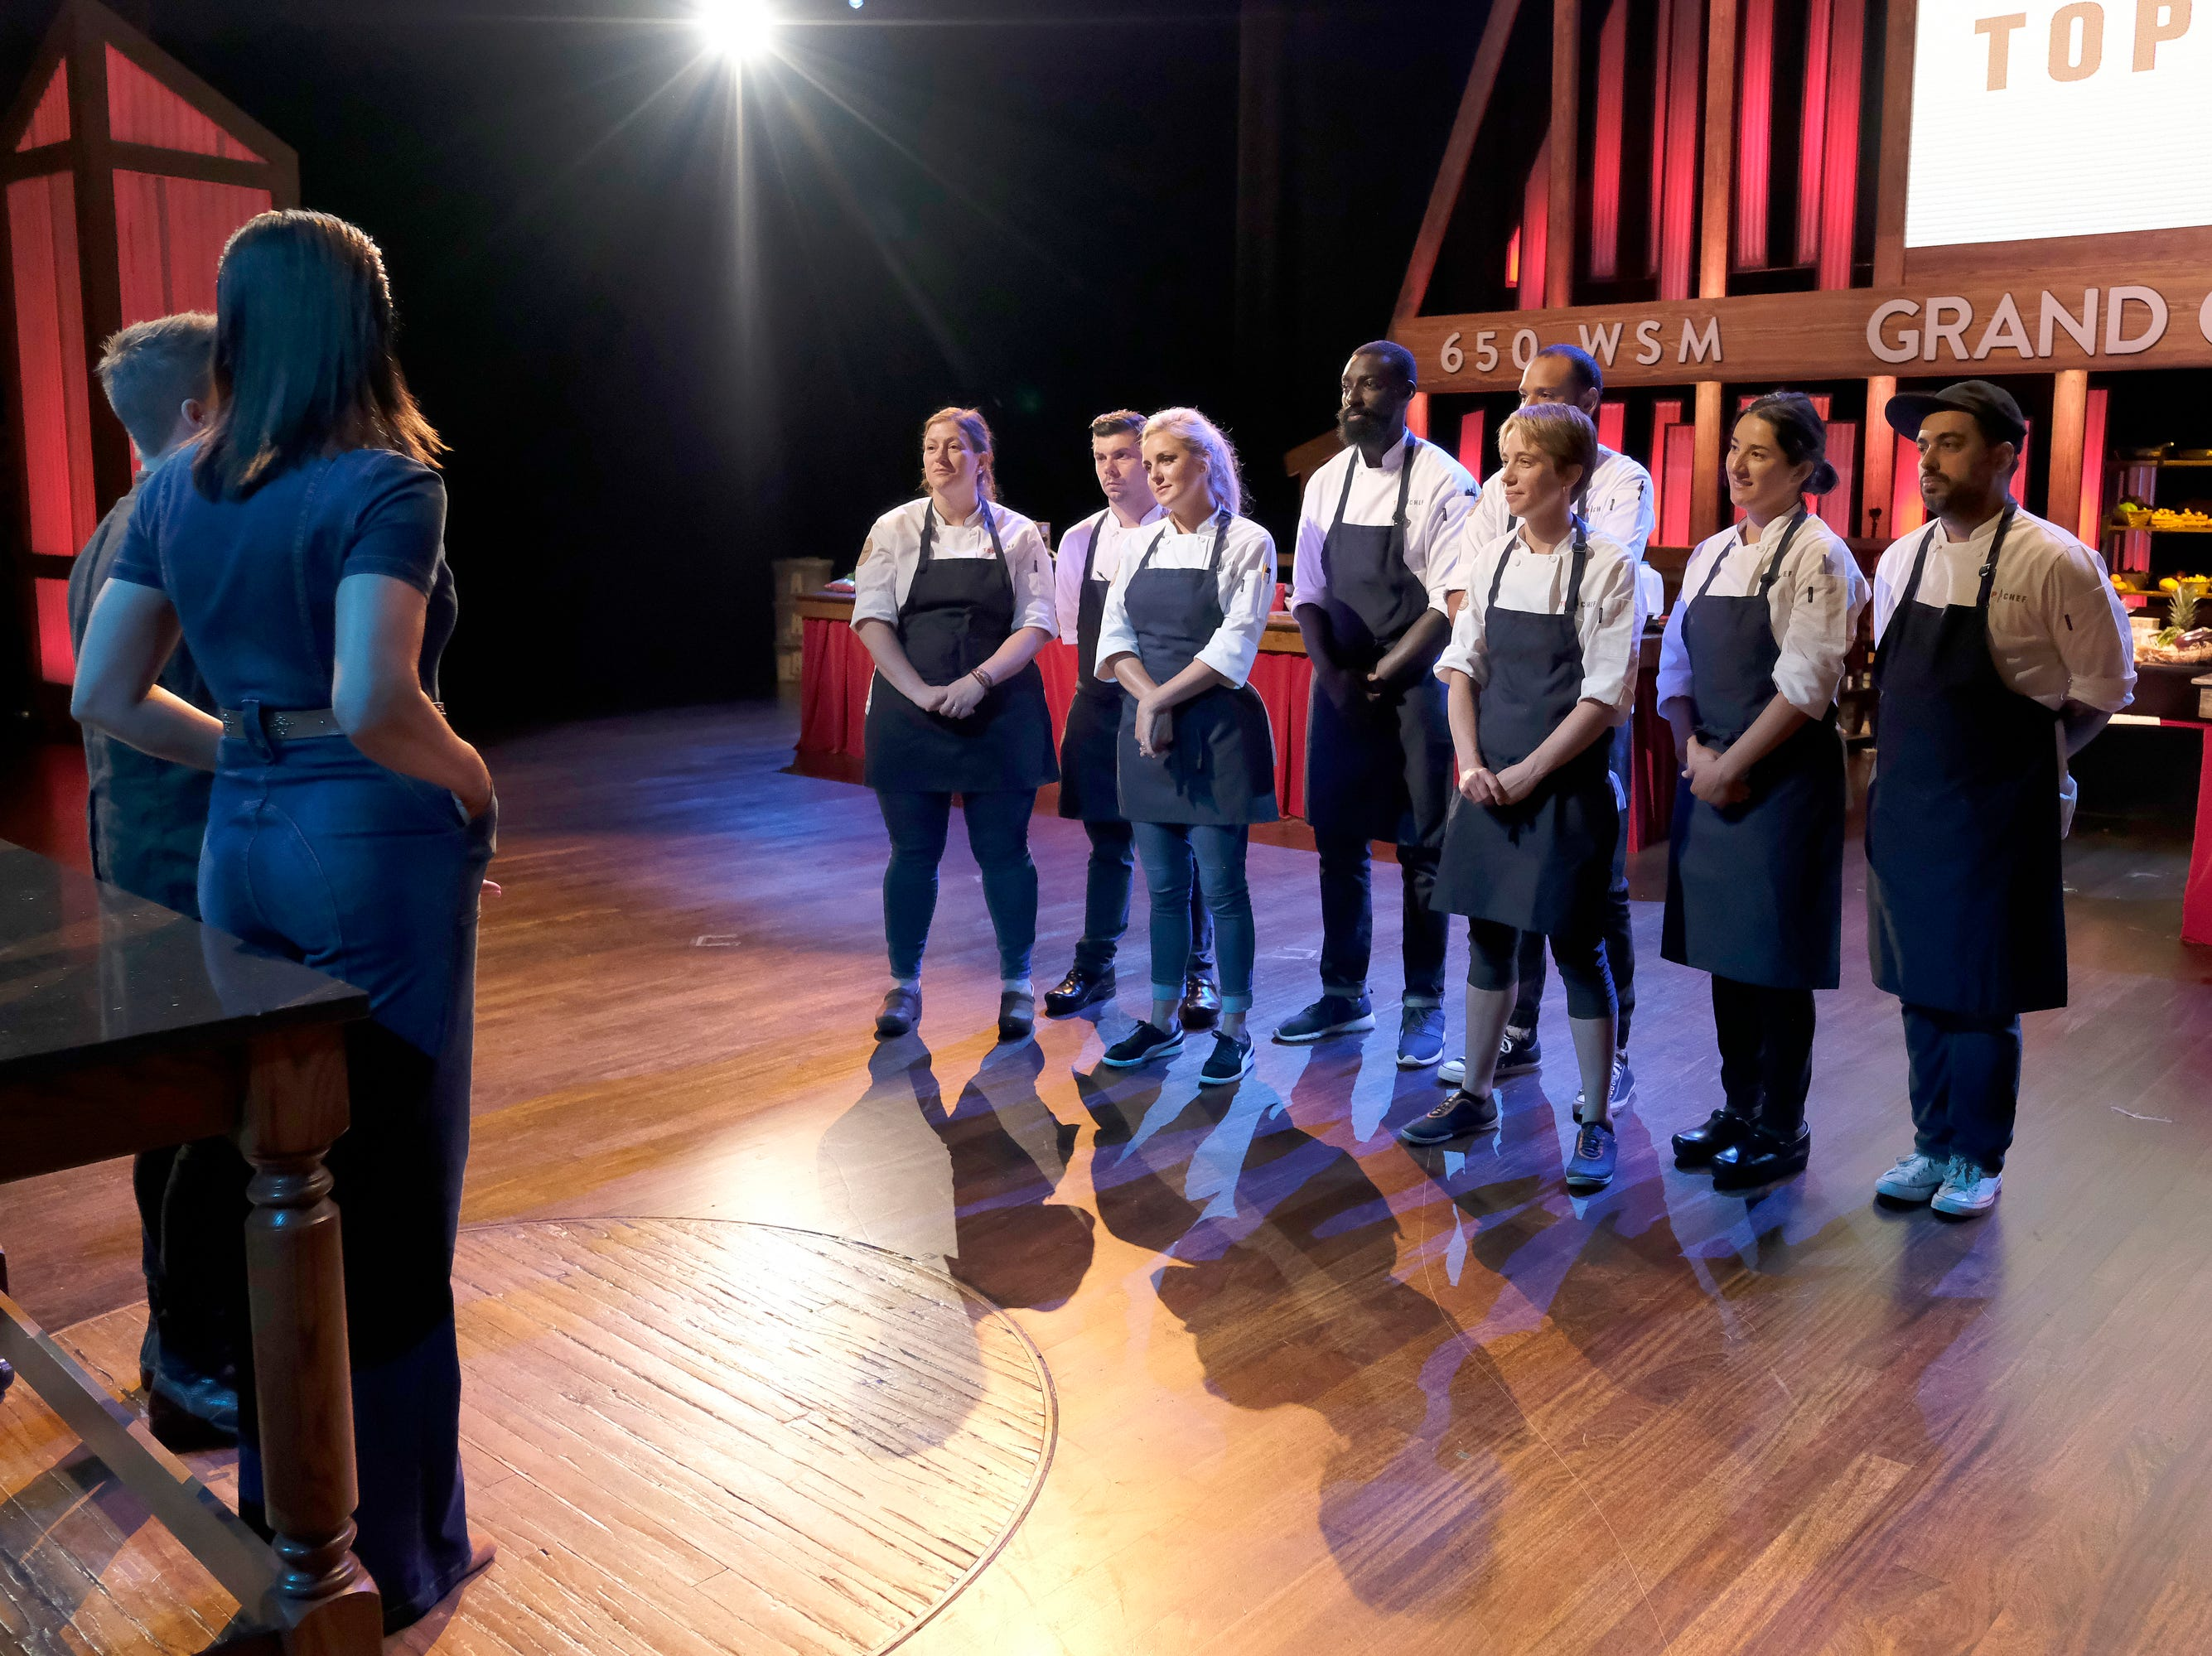 (Left to right): Contestants Sara Bradley, Eddie Konrad, Kelsey Barnard, Eric Adjepong, Adrienne Wright, Michelle Minori and David Viana at the Grand Ole Opry on episode 9 of Bravo's 'Top Chef: Kentucky' season.